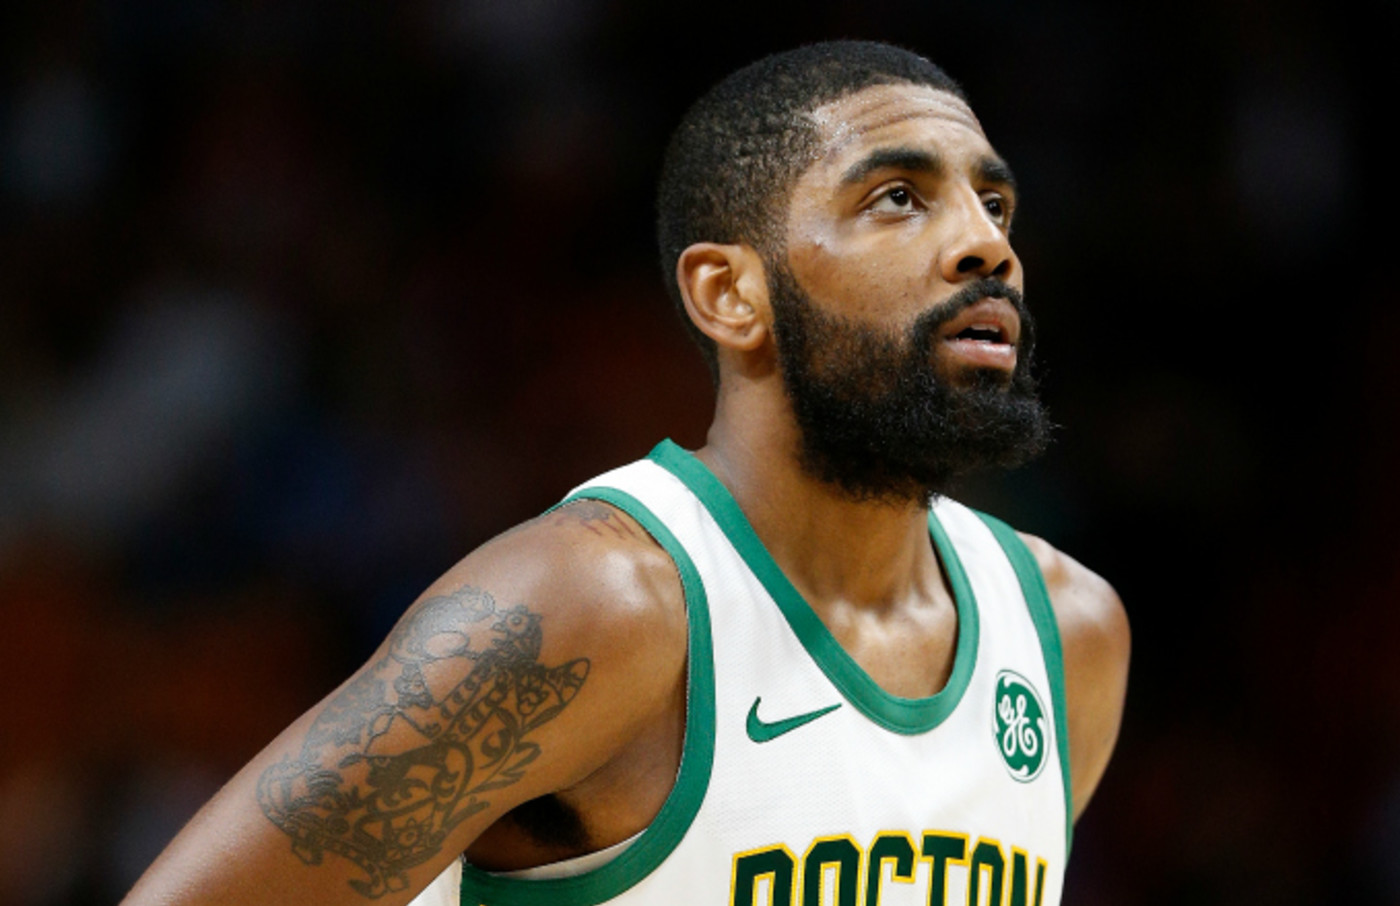 Kyrie Irving #11 of the Boston Celtics in action against the Miami Heat